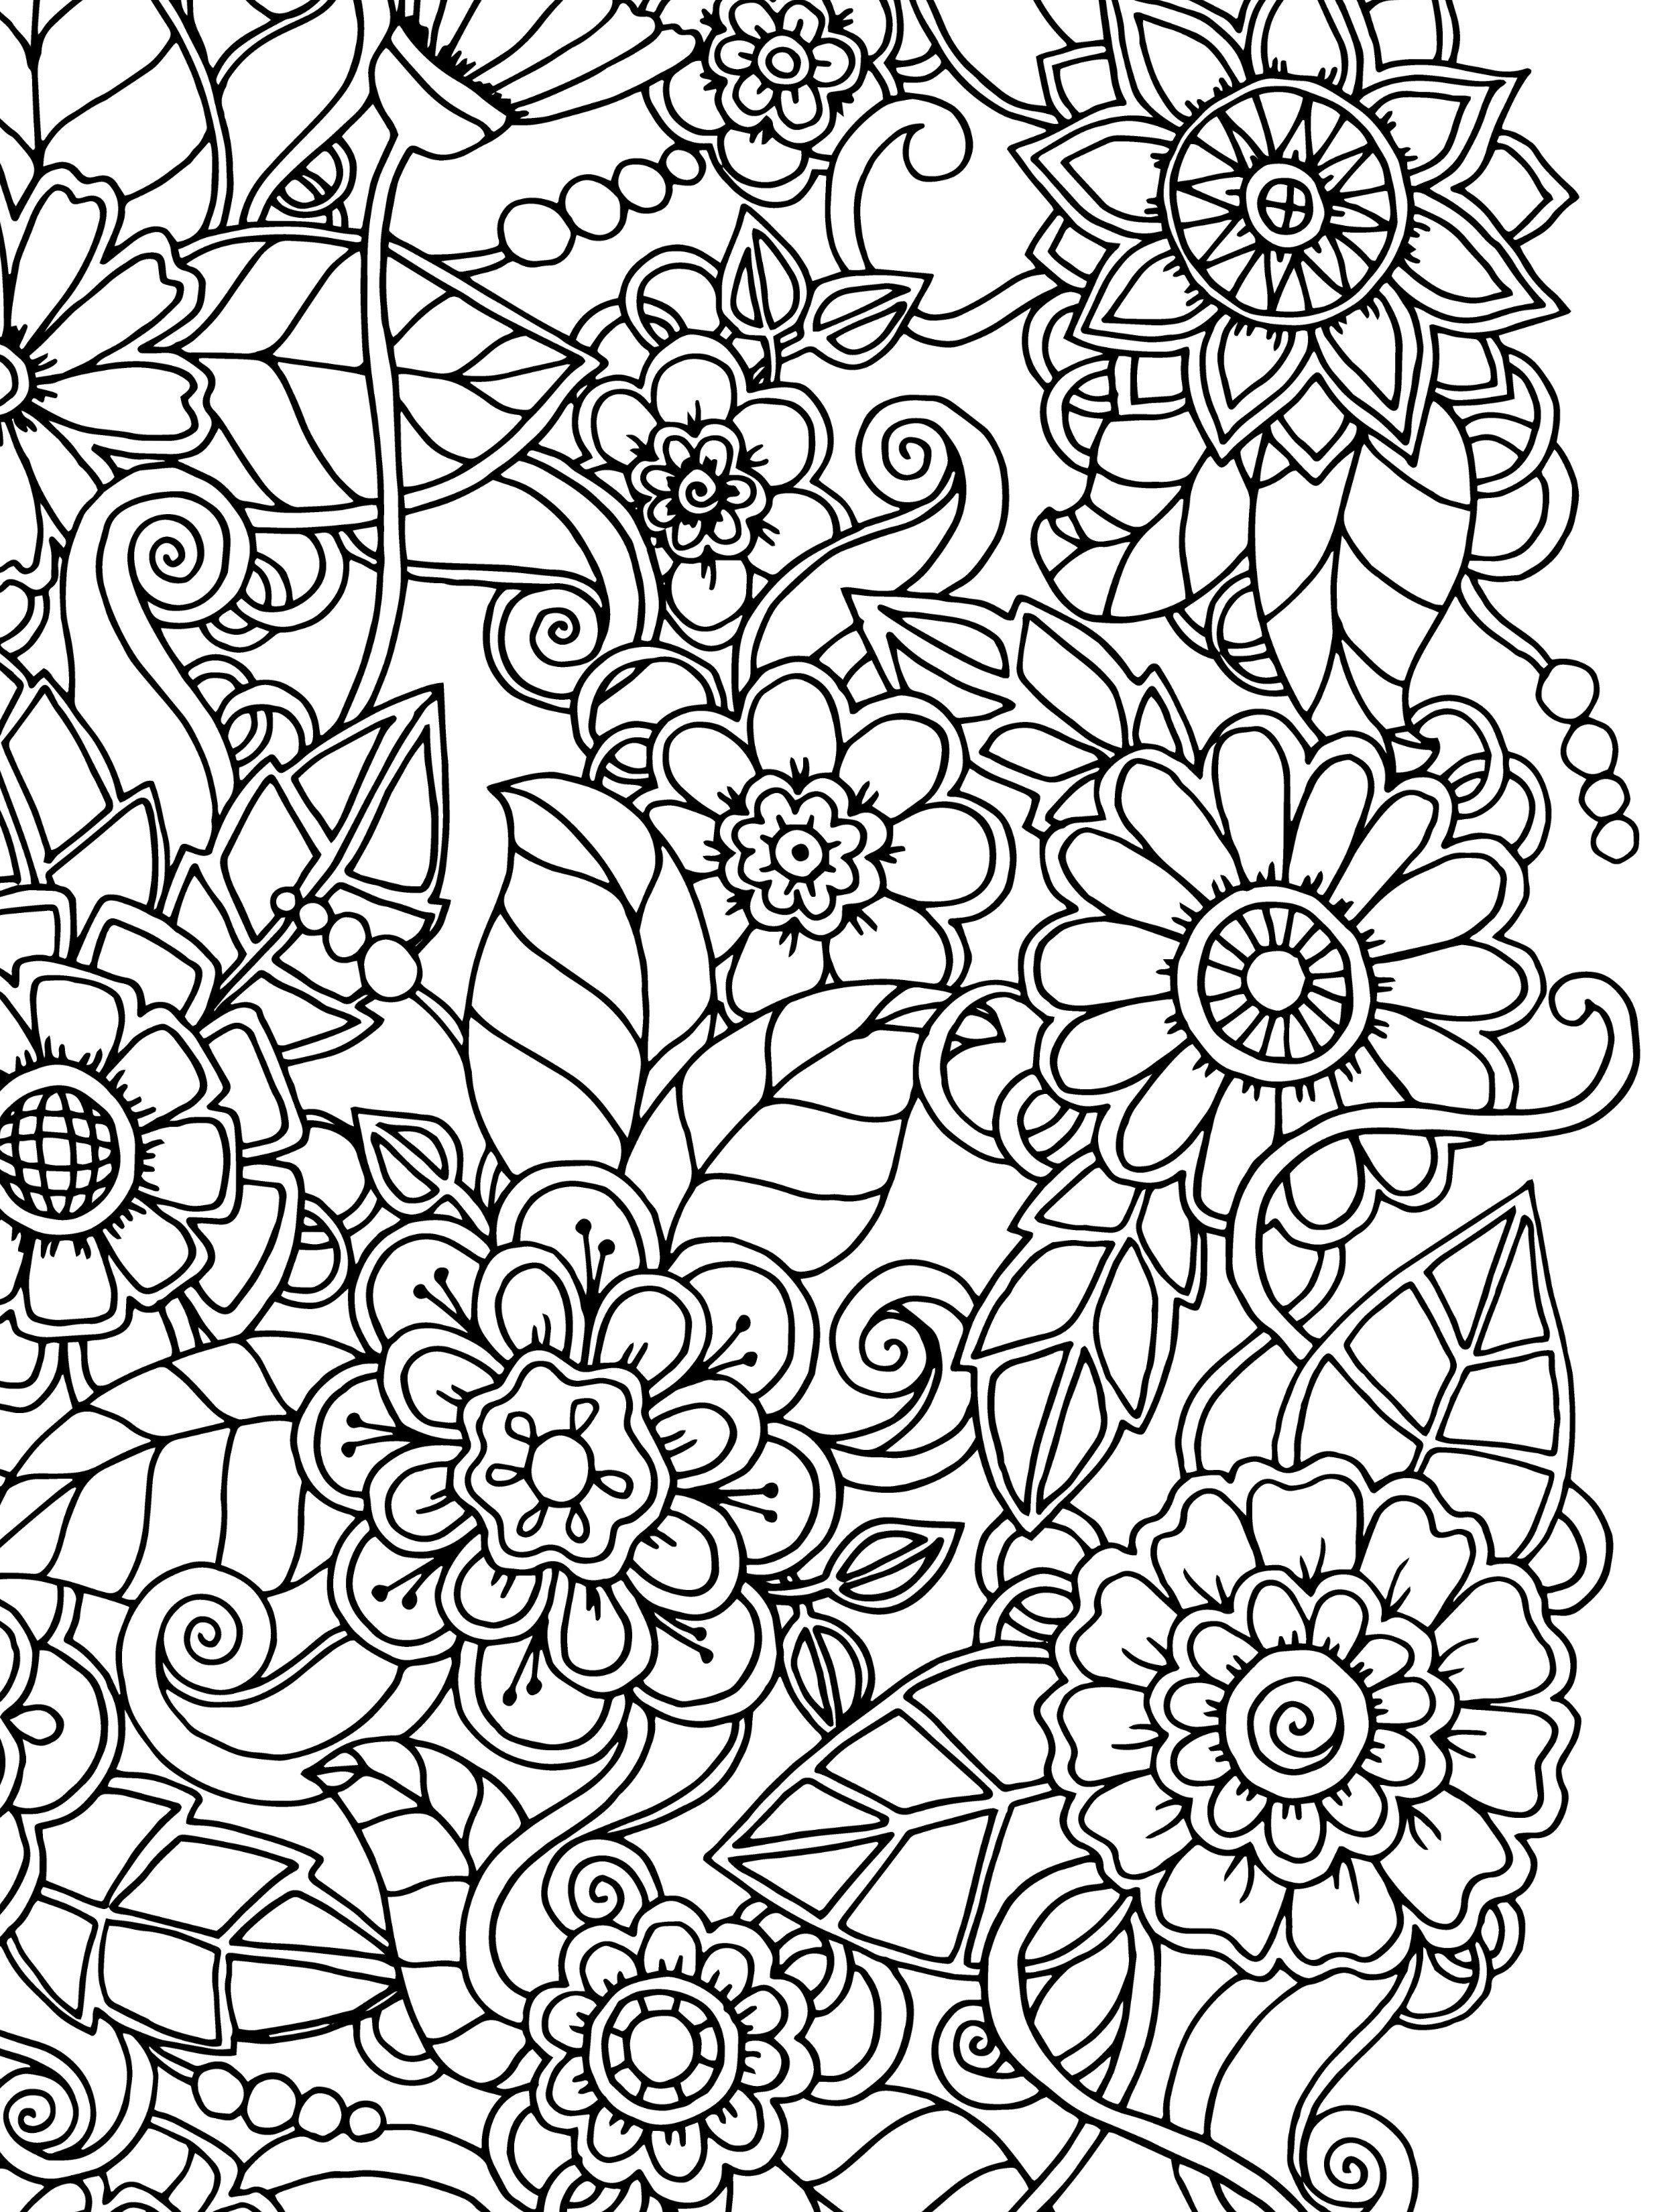 Gentil 15 CRAZY Busy Coloring Pages For Adults